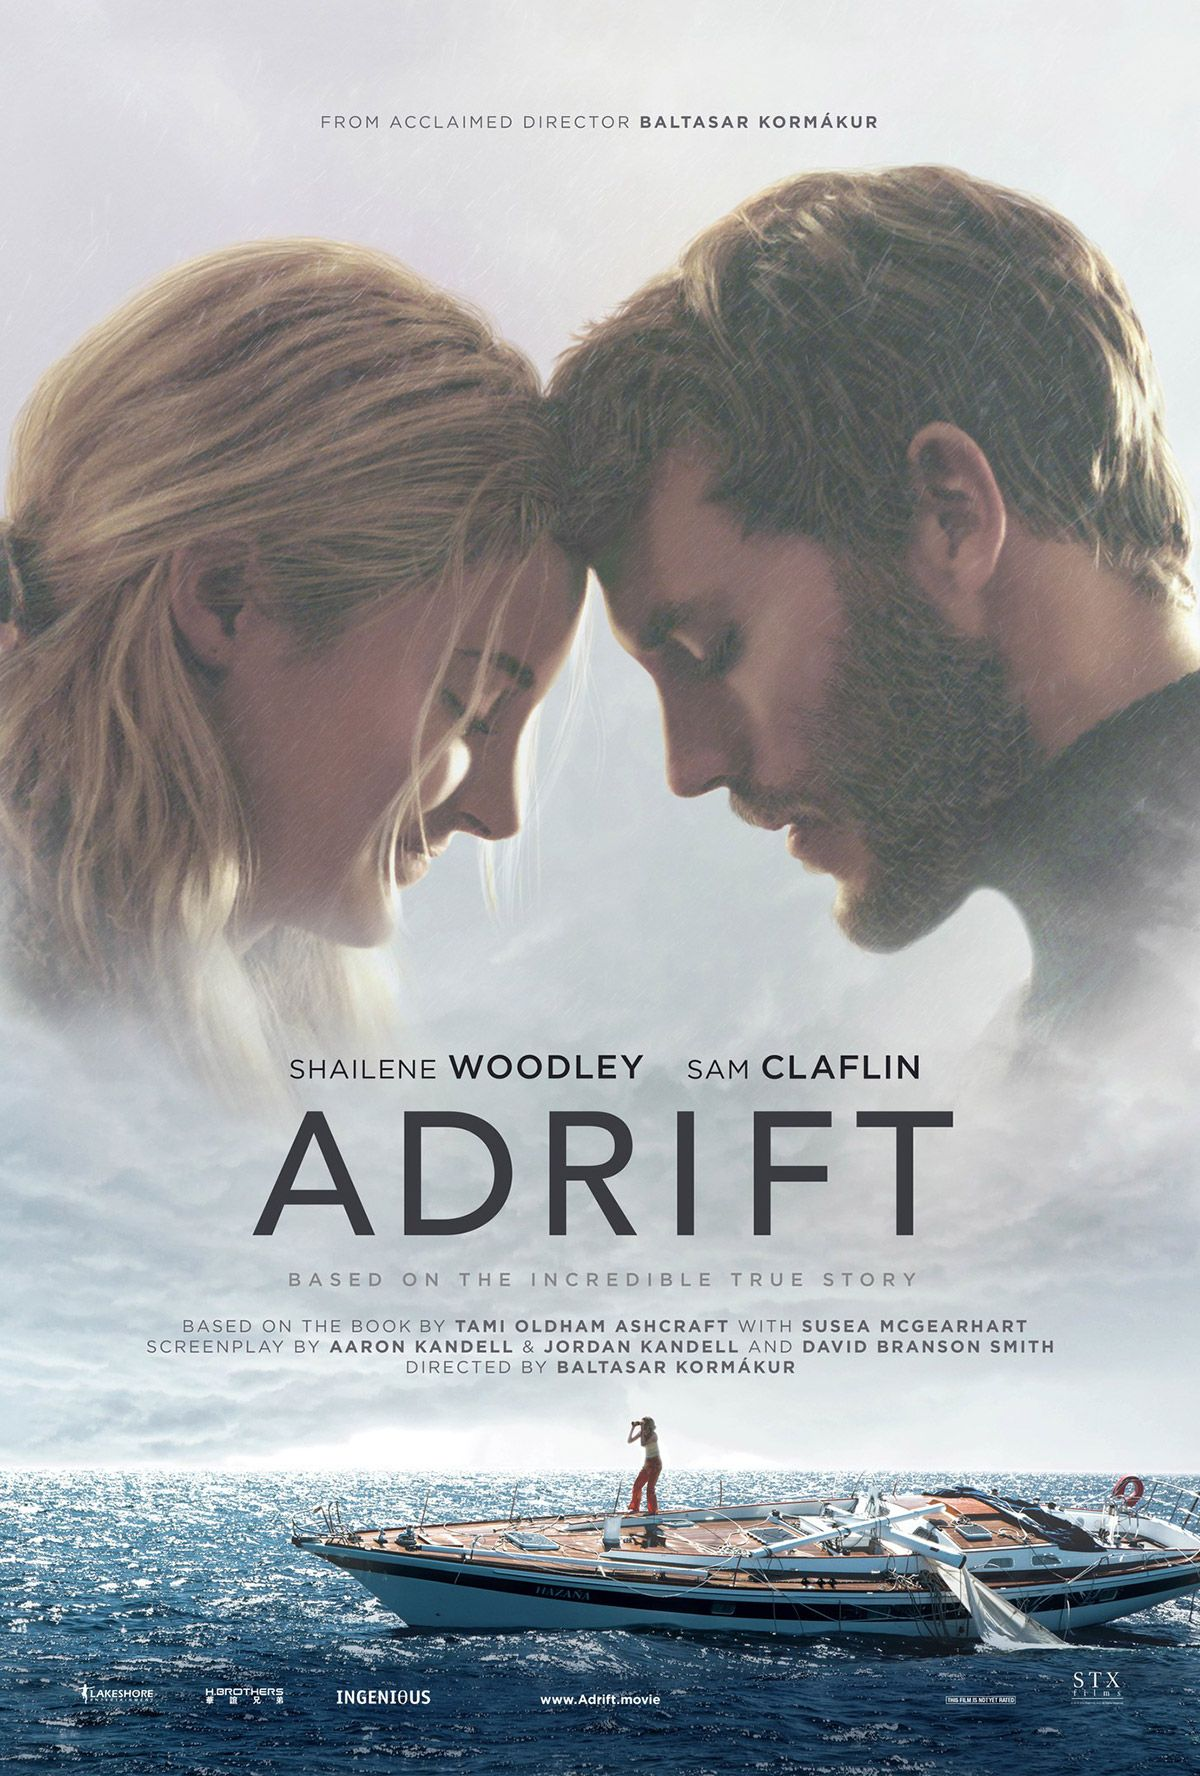 Compelling and life-affirming, Adrift is a real-life survival story that ends on an upbeat note after tragedy struck...Emotional and draining it will make you wonder what you have been doing with your life.